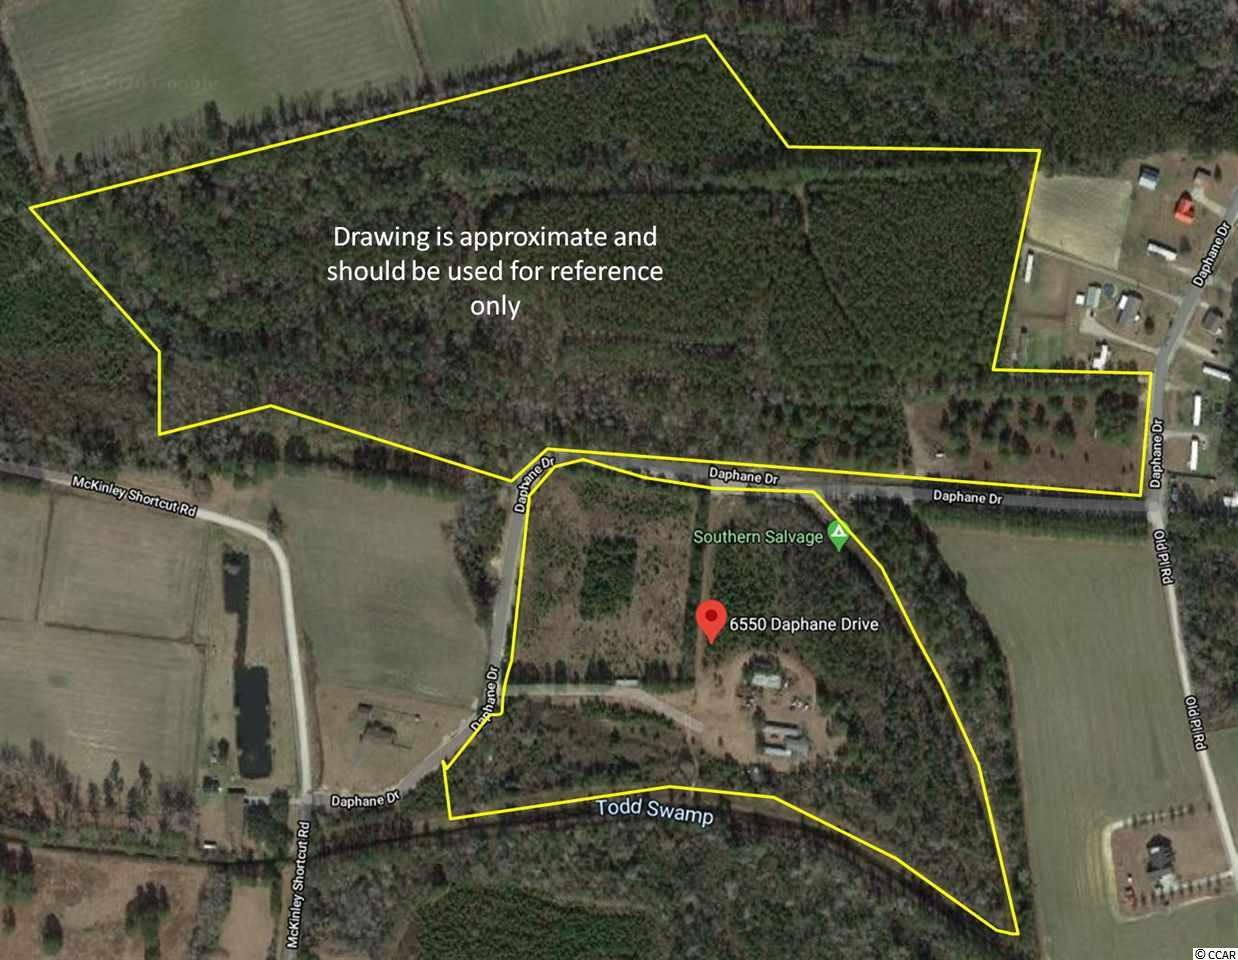 There are (7) 1/2 acre lots available zoned as MSF 14.5 for residential use of all collective structural categories, stick built, modular,and manufactured. Public Water/Sewer Available. NOT IN A FLOOD ZONE. Easy access to area beaches and amenities conveniently located less than a mile from the Highway 905/Highway 22 Junction. Excellent Tractfor residential community, RV Resort,Industrial,Commercial, Recreational uses and the like. The multi acre lots are Zoned PDD allowing for mixture of residential, commercial,office,industrial uses on this single site. Prime Development Tract other lots available totalling approx 50 acres. PDD parcels have been approved for Campground/RV Resort use but can be rezoned.